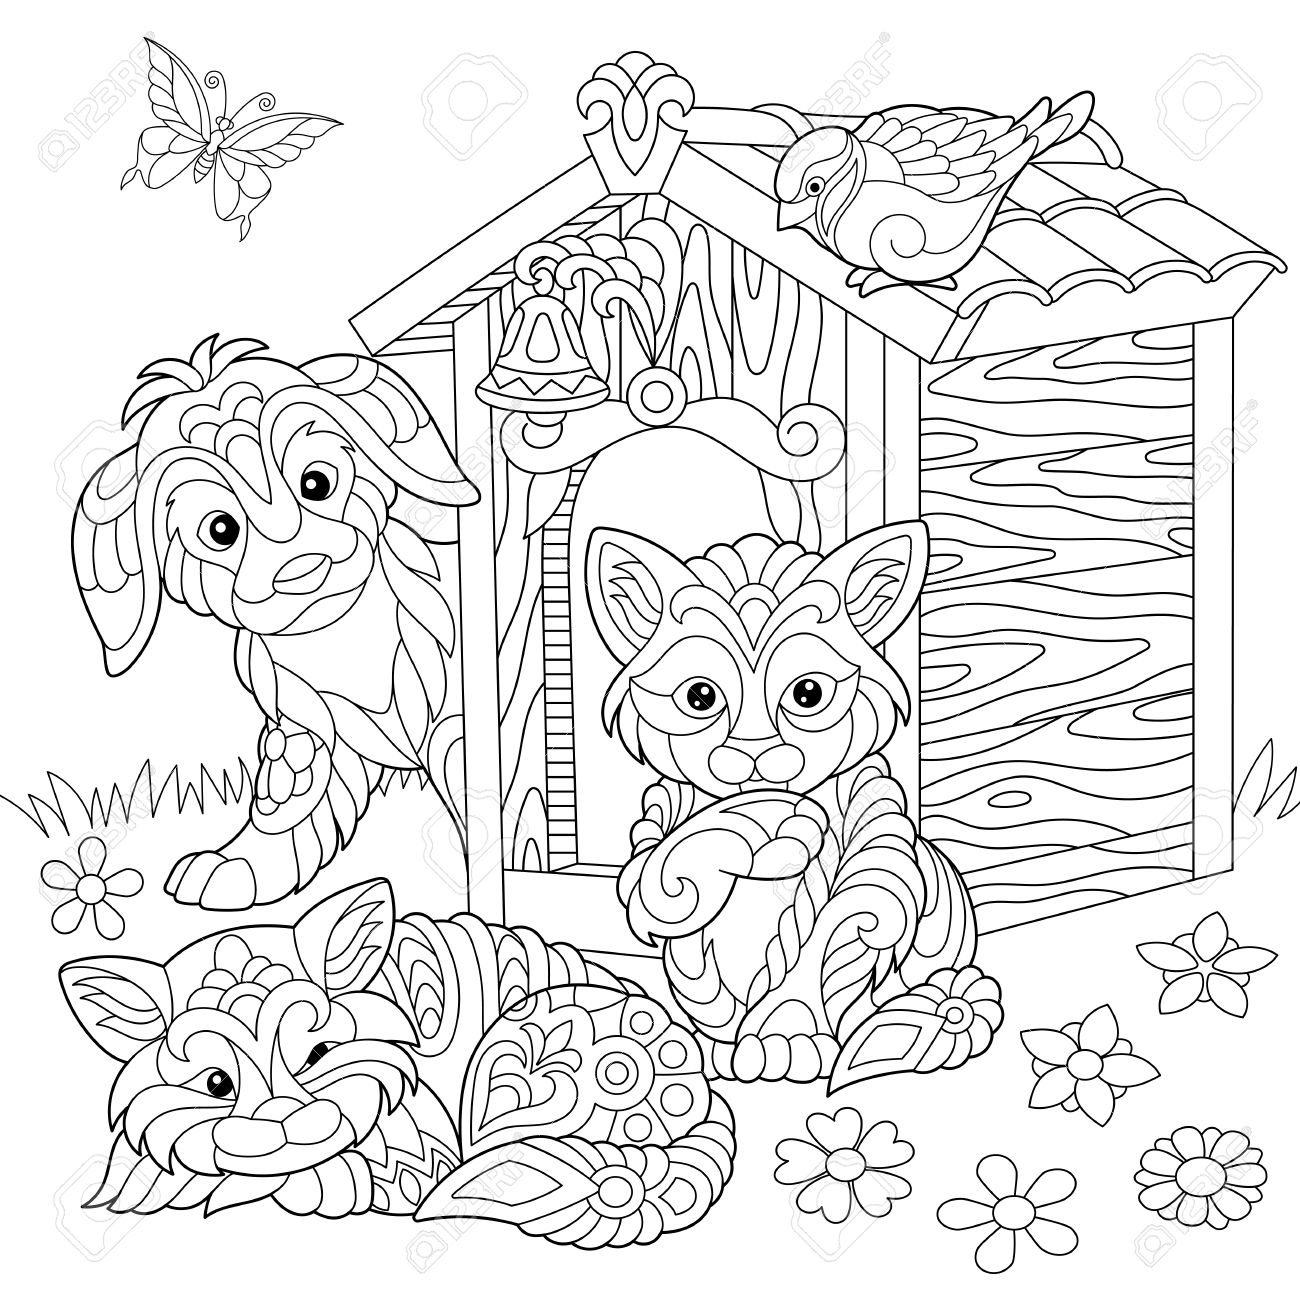 1300x1300 Coloring Page Of Dog, Two Cats, Sparrow Bird And Butterfly